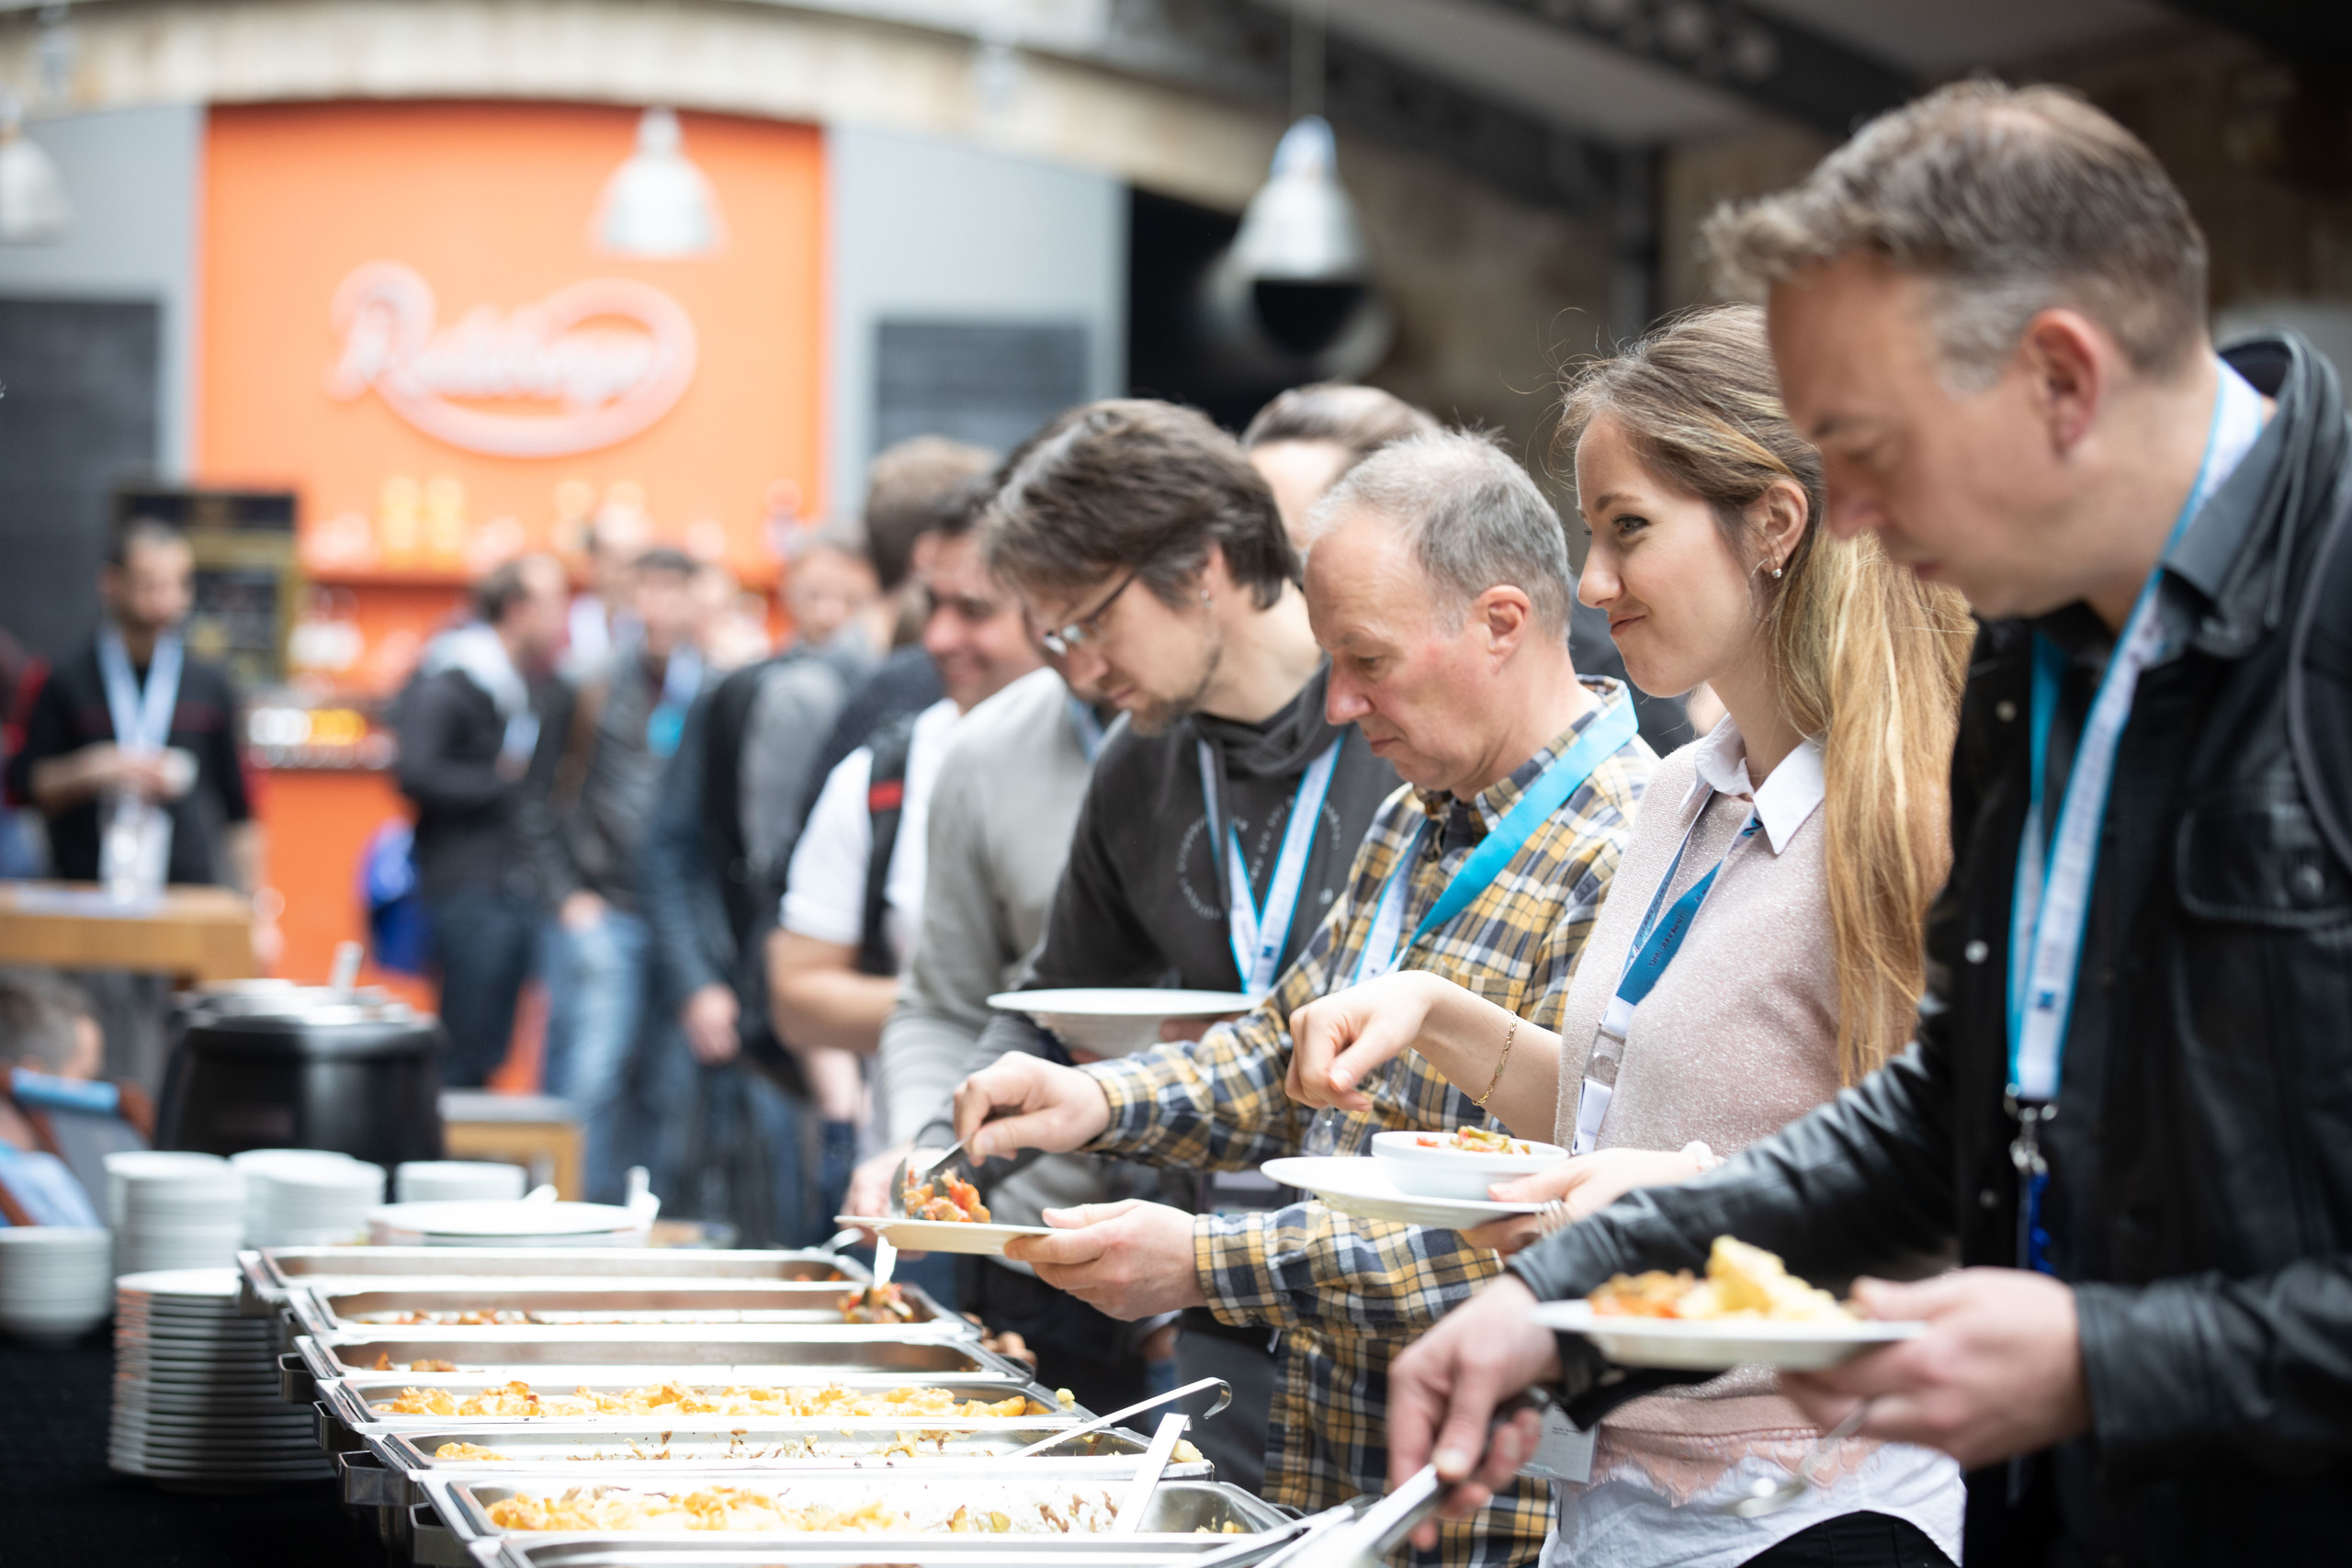 Attendees queuing for food during lunch break